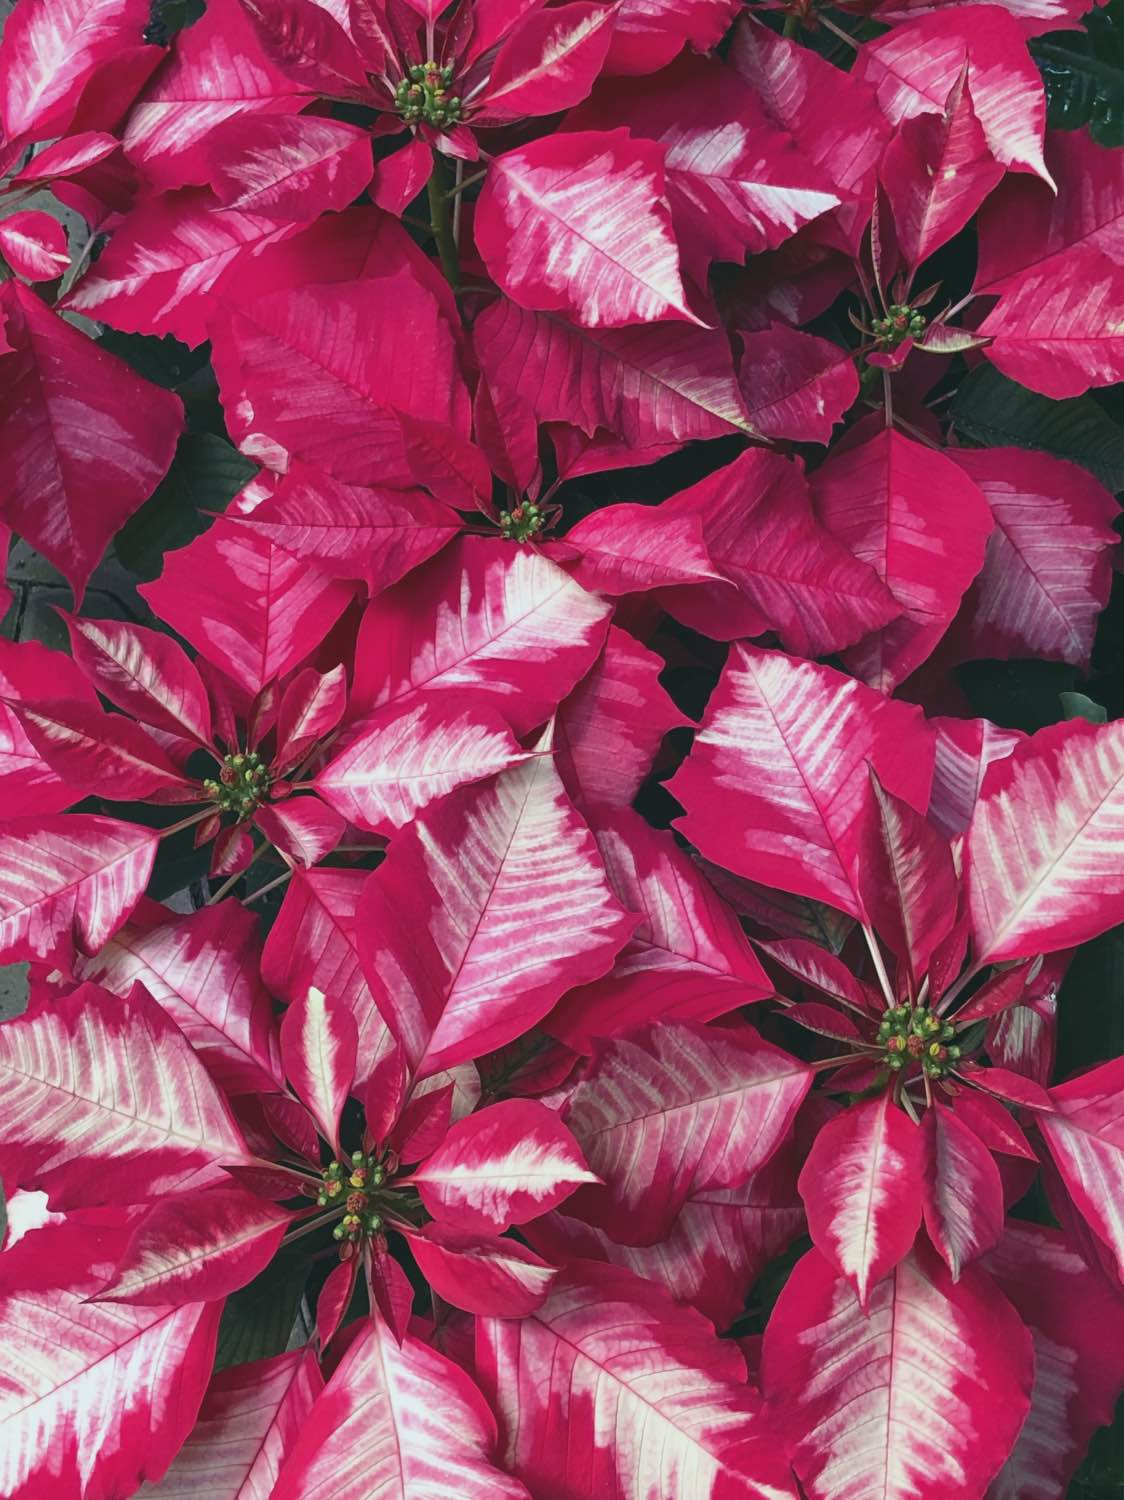 poinsettia care guide by pop shop america gardening tips